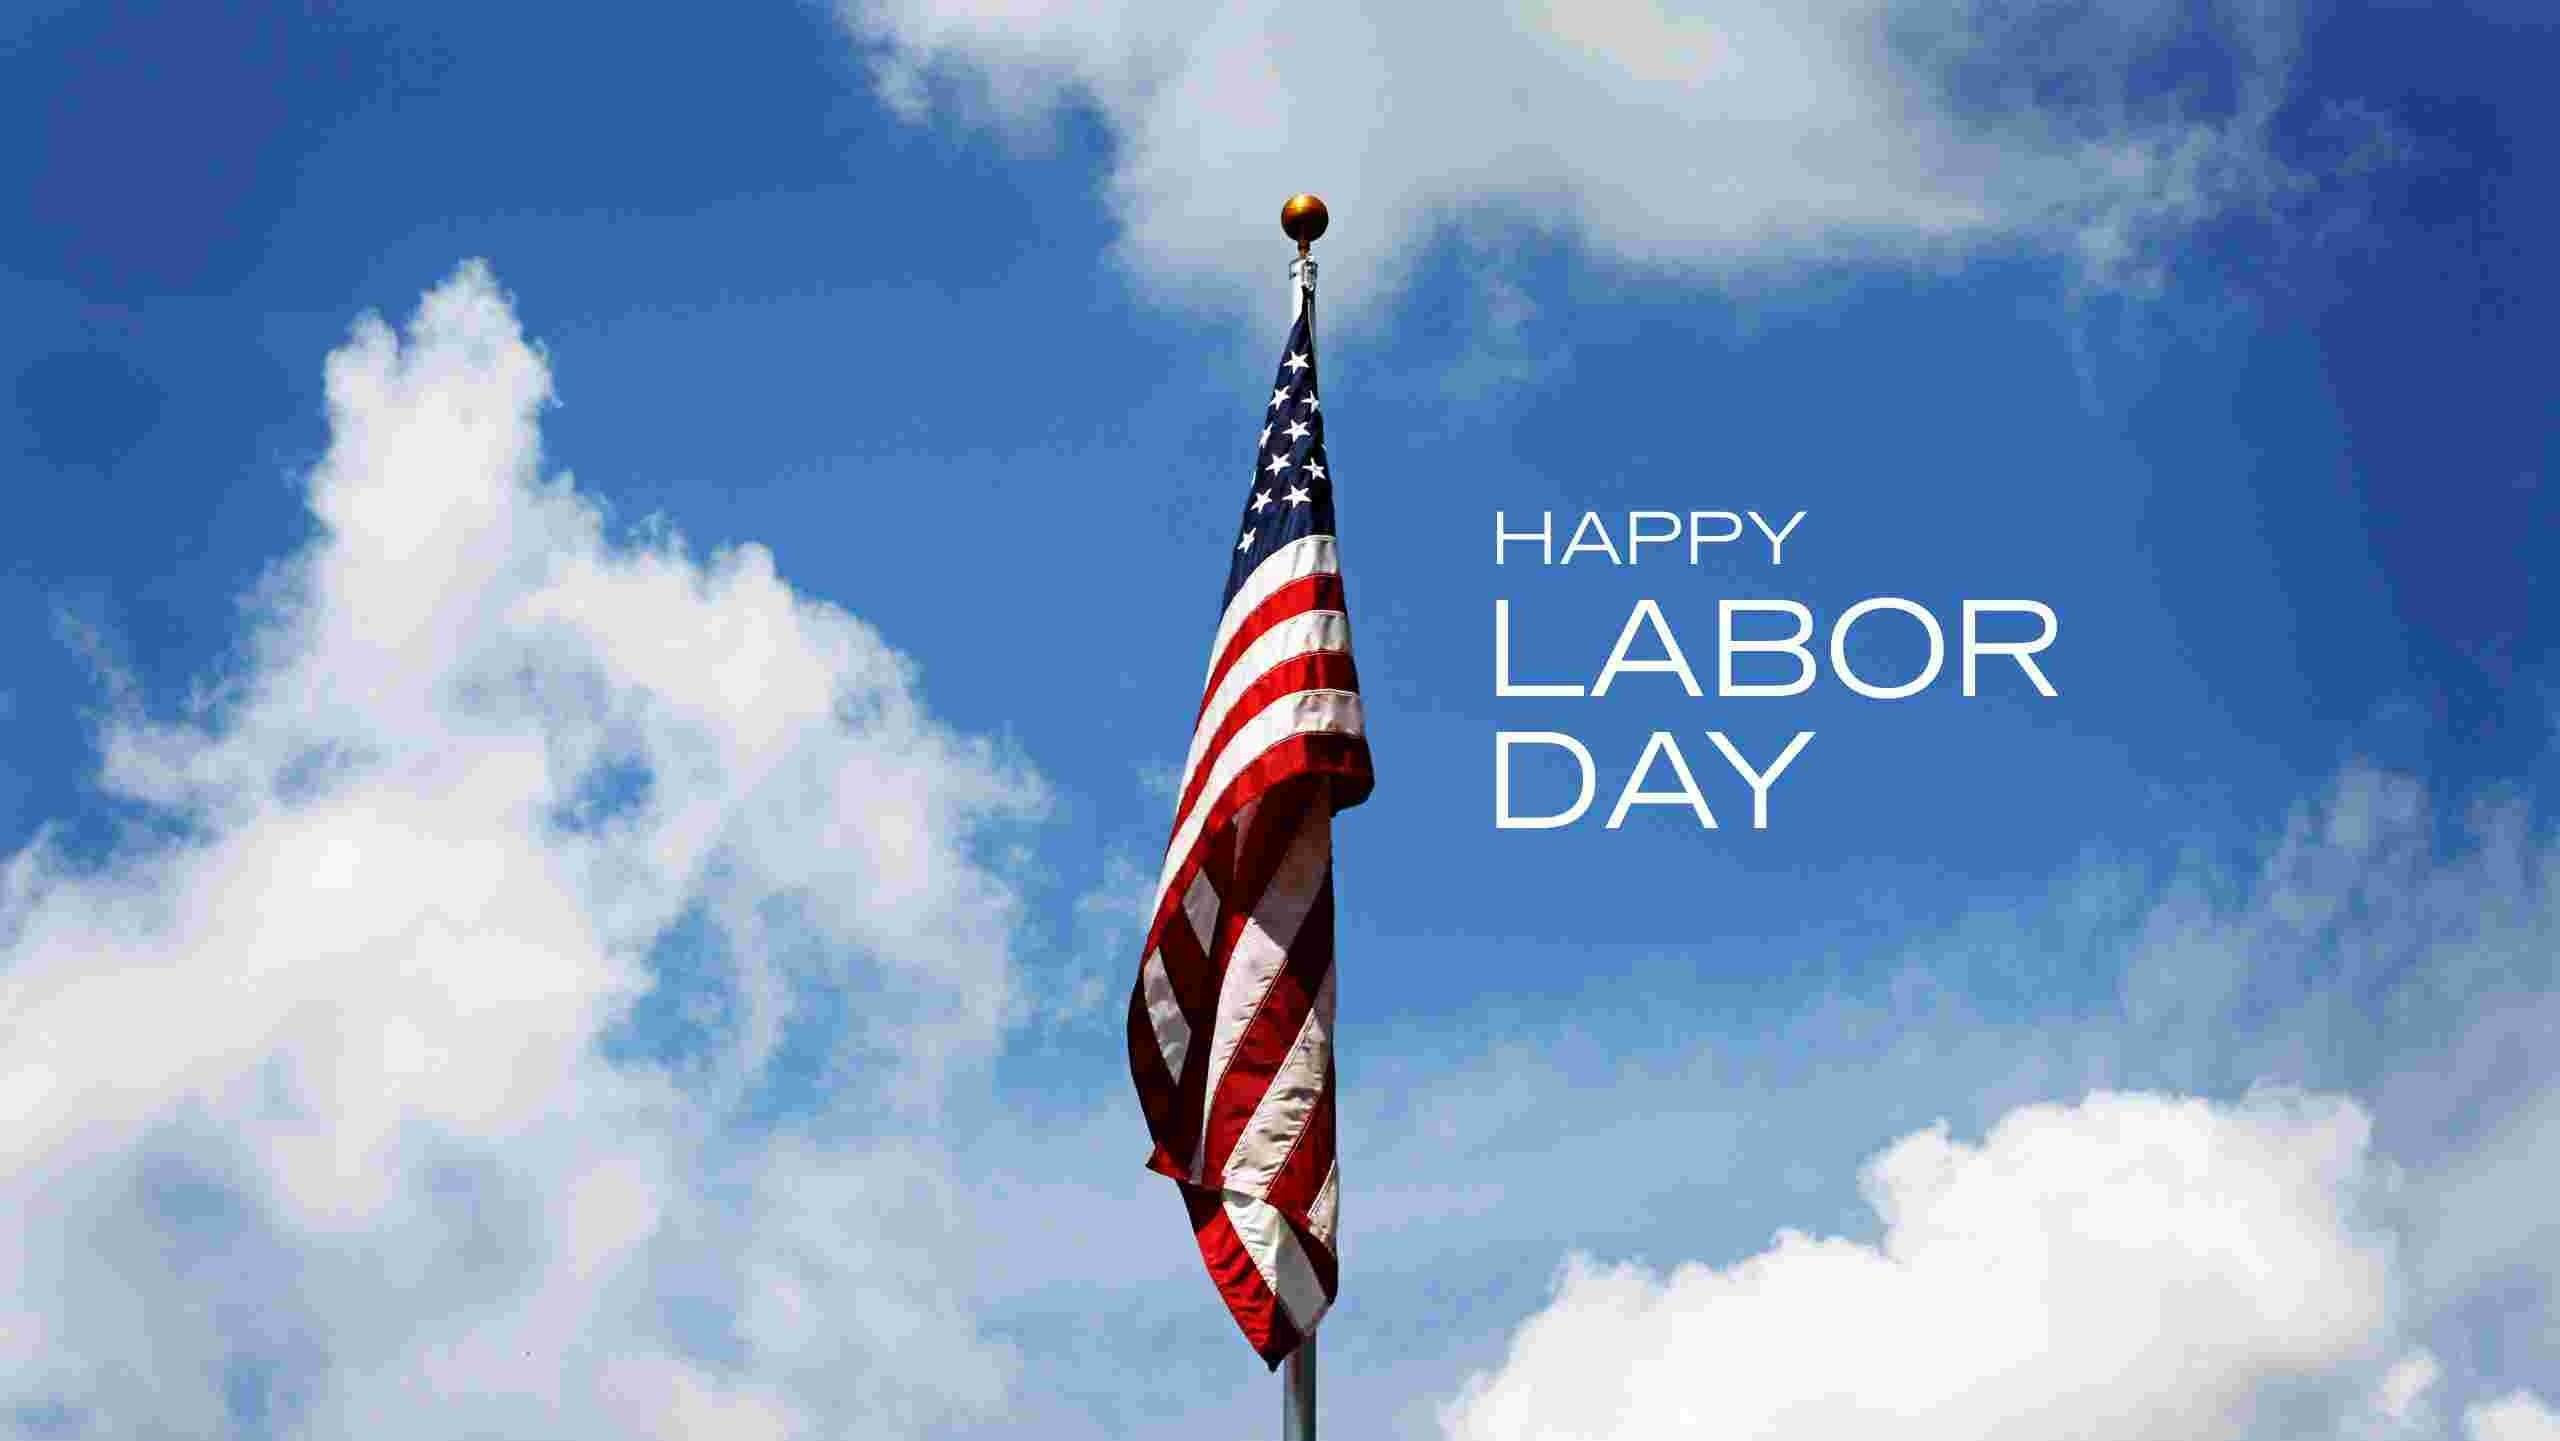 Res: 2560x1441, day, Labor day, workers day wallpapers mayday international labour day